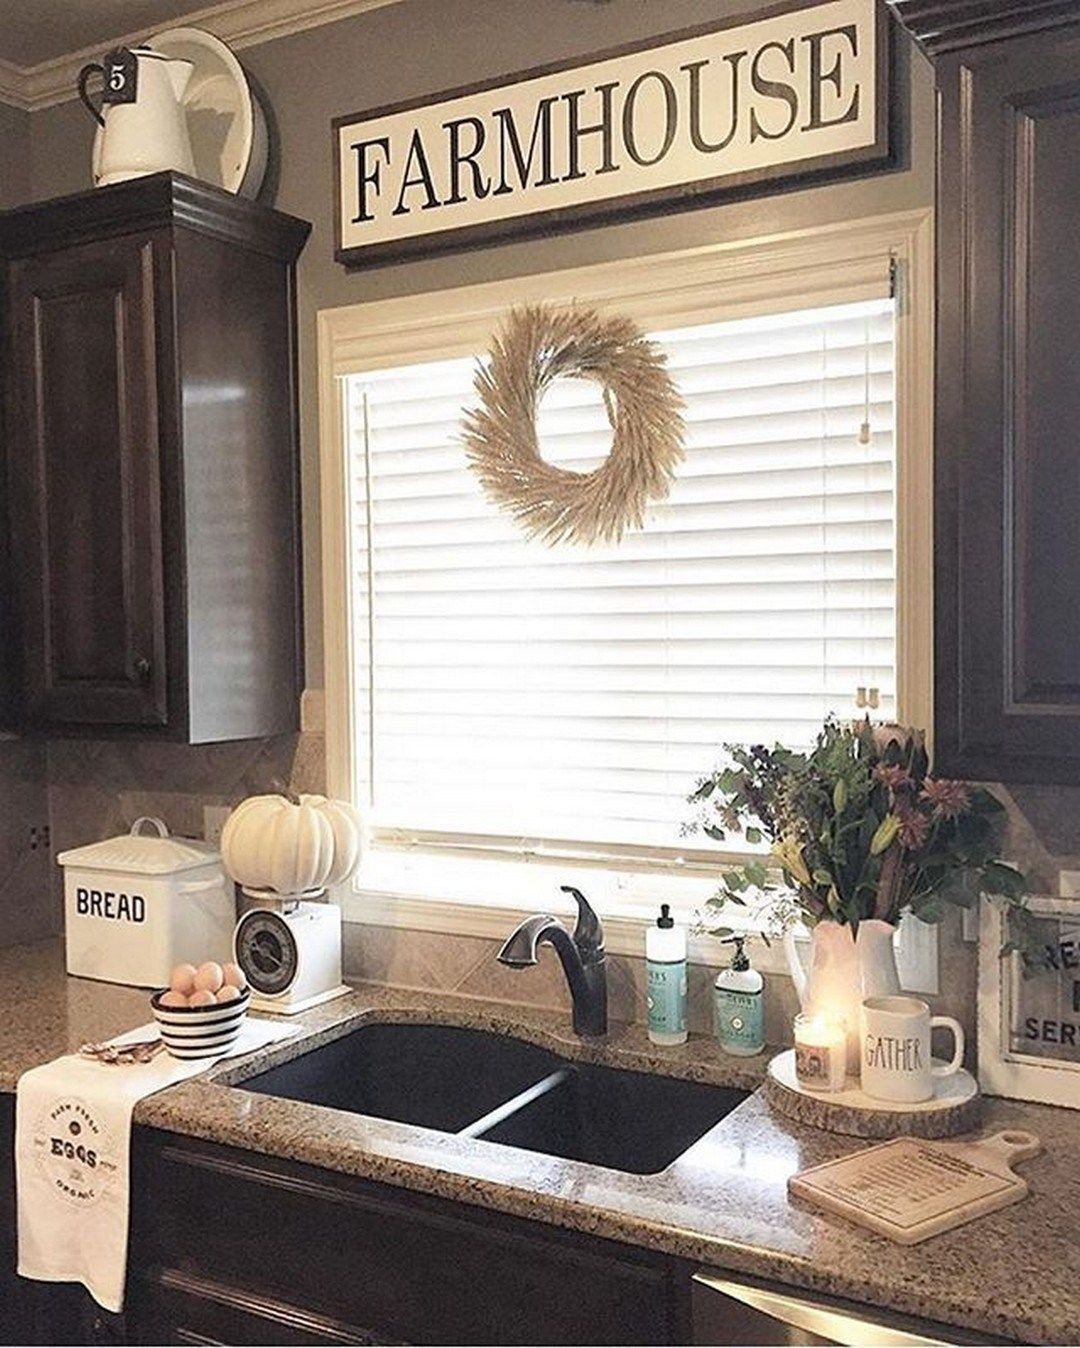 Diy Rustic Home Decor Ideas: 122 Cheap, Easy And Simple DIY Rustic Home Decor Ideas (46